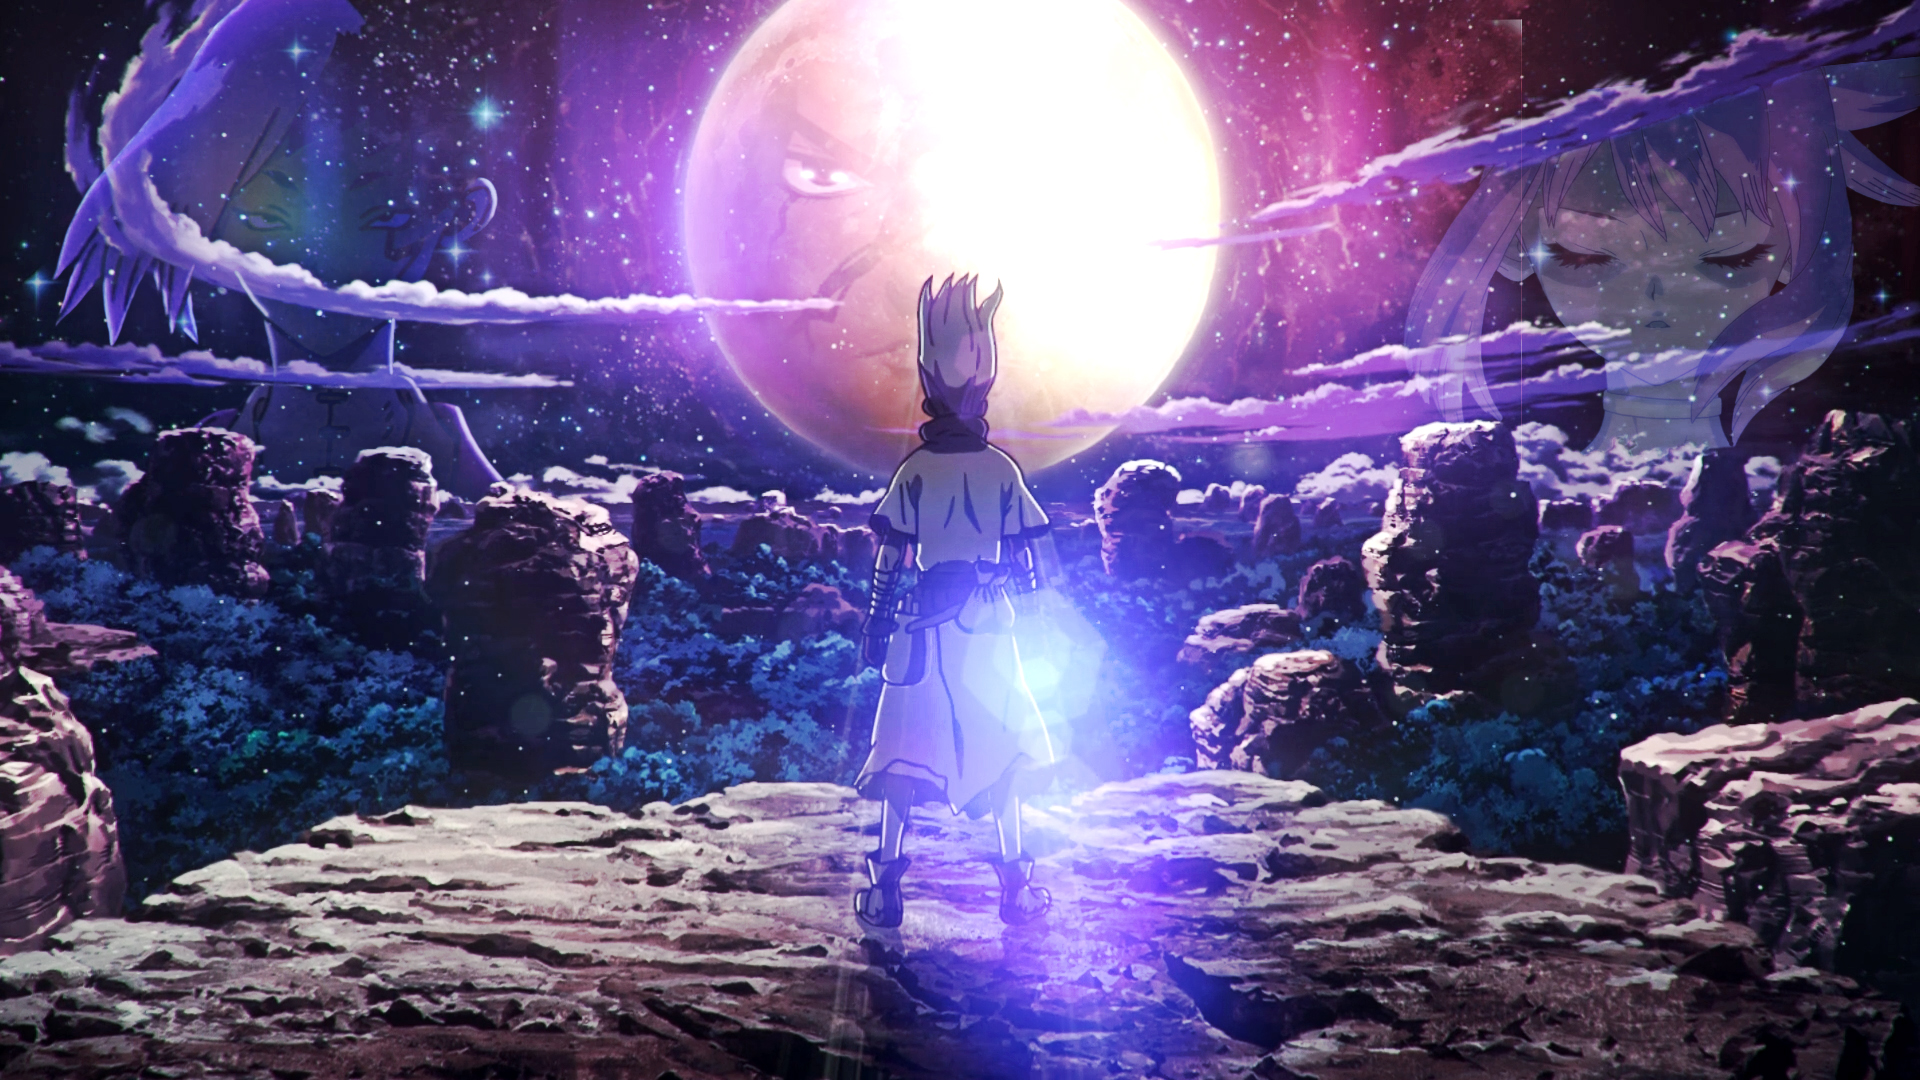 Dr Stone Anime Wallpapers - Wallpaper Cave